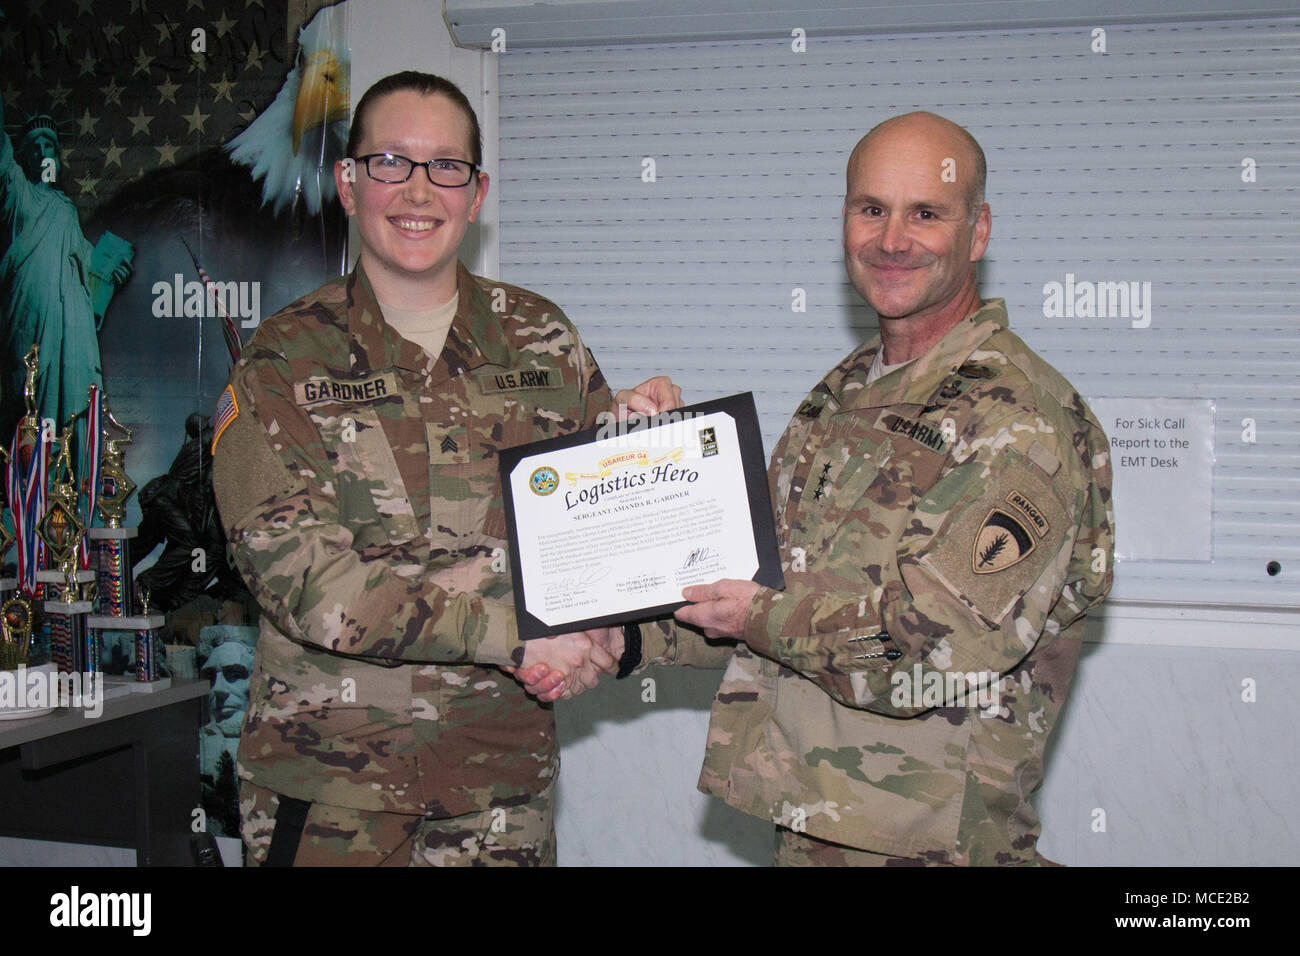 he U.S. Army Europe commanding general, Lt. Gen. Christopher Cavoli, presents a Logistics Hero certificate to Sgt. Amanda Gardner, a medical equipment maintainer, for her efforts in identifying and fixing outdated medical equipment stored at the MNBG-East medical facility on Camp Bondsteel. Stock Photo